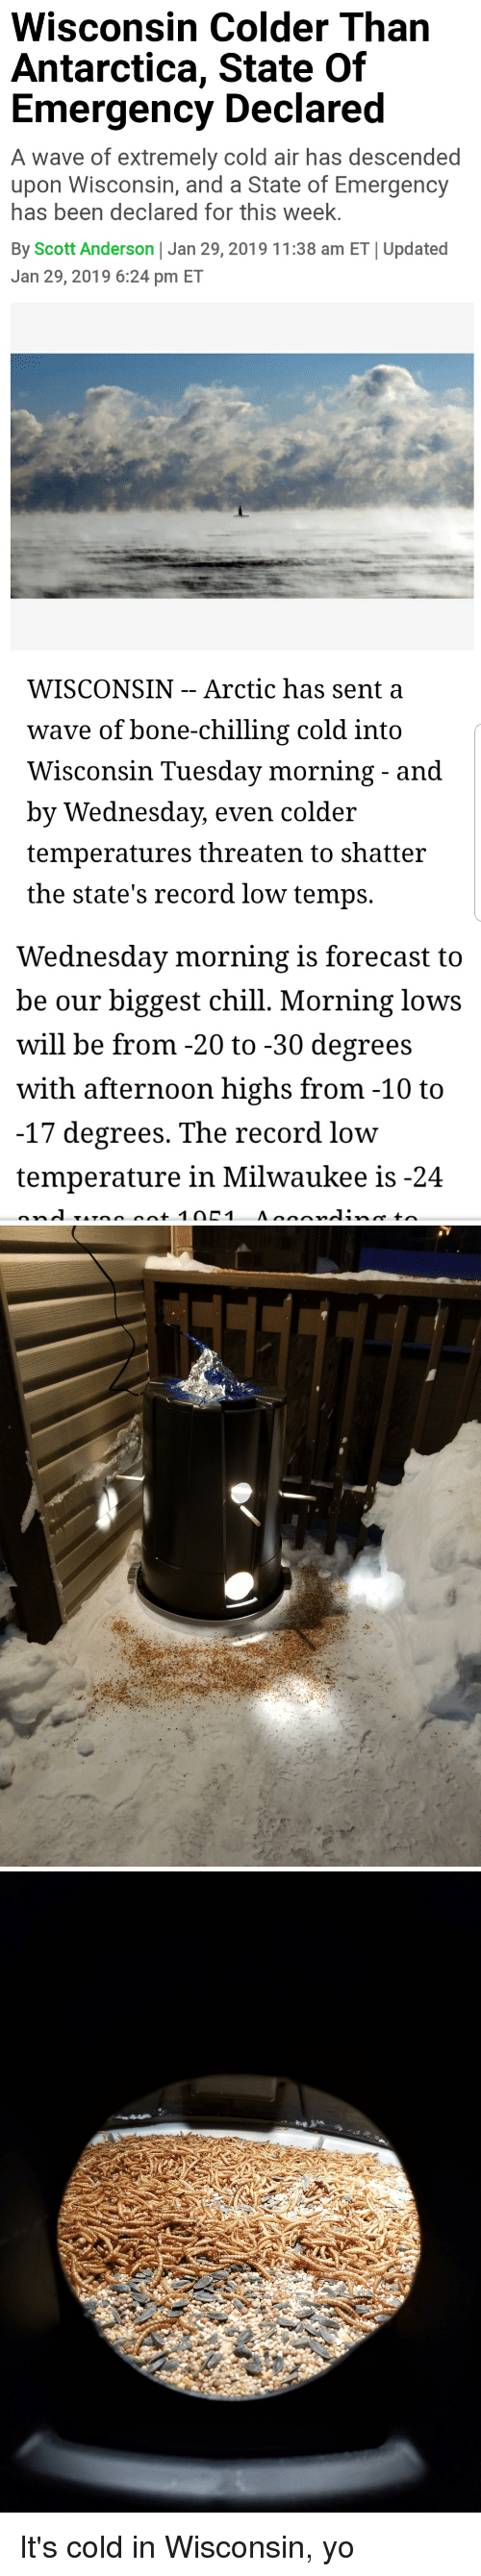 Chill, Yo, and Forecast: Wisconsin Colder Than  Antarctica, State Of  Emergency Declared  A wave of extremely cold air has descended  upon Wisconsin, and a State of Emergency  has been declared for this week.  By Scott Anderson Jan 29, 2019 11:38 am ET Updated  Jan 29, 2019 6:24 pm ET   WISCONSIN - - Arctic has sent a  wave of bone-chilling cold intO  Wisconsin Tuesday morning - and  by Wednesday, even col  temperatures threaten to shatter  the state's record low temps.  der   Wednesday morning is forecast to  be our biggest chill. Morning lows  will be from -20 to -30 degrees  with afternoon highs from -10 to  -17 degrees. The record low  temperature in Milwaukee is-24 It's cold in Wisconsin, yo